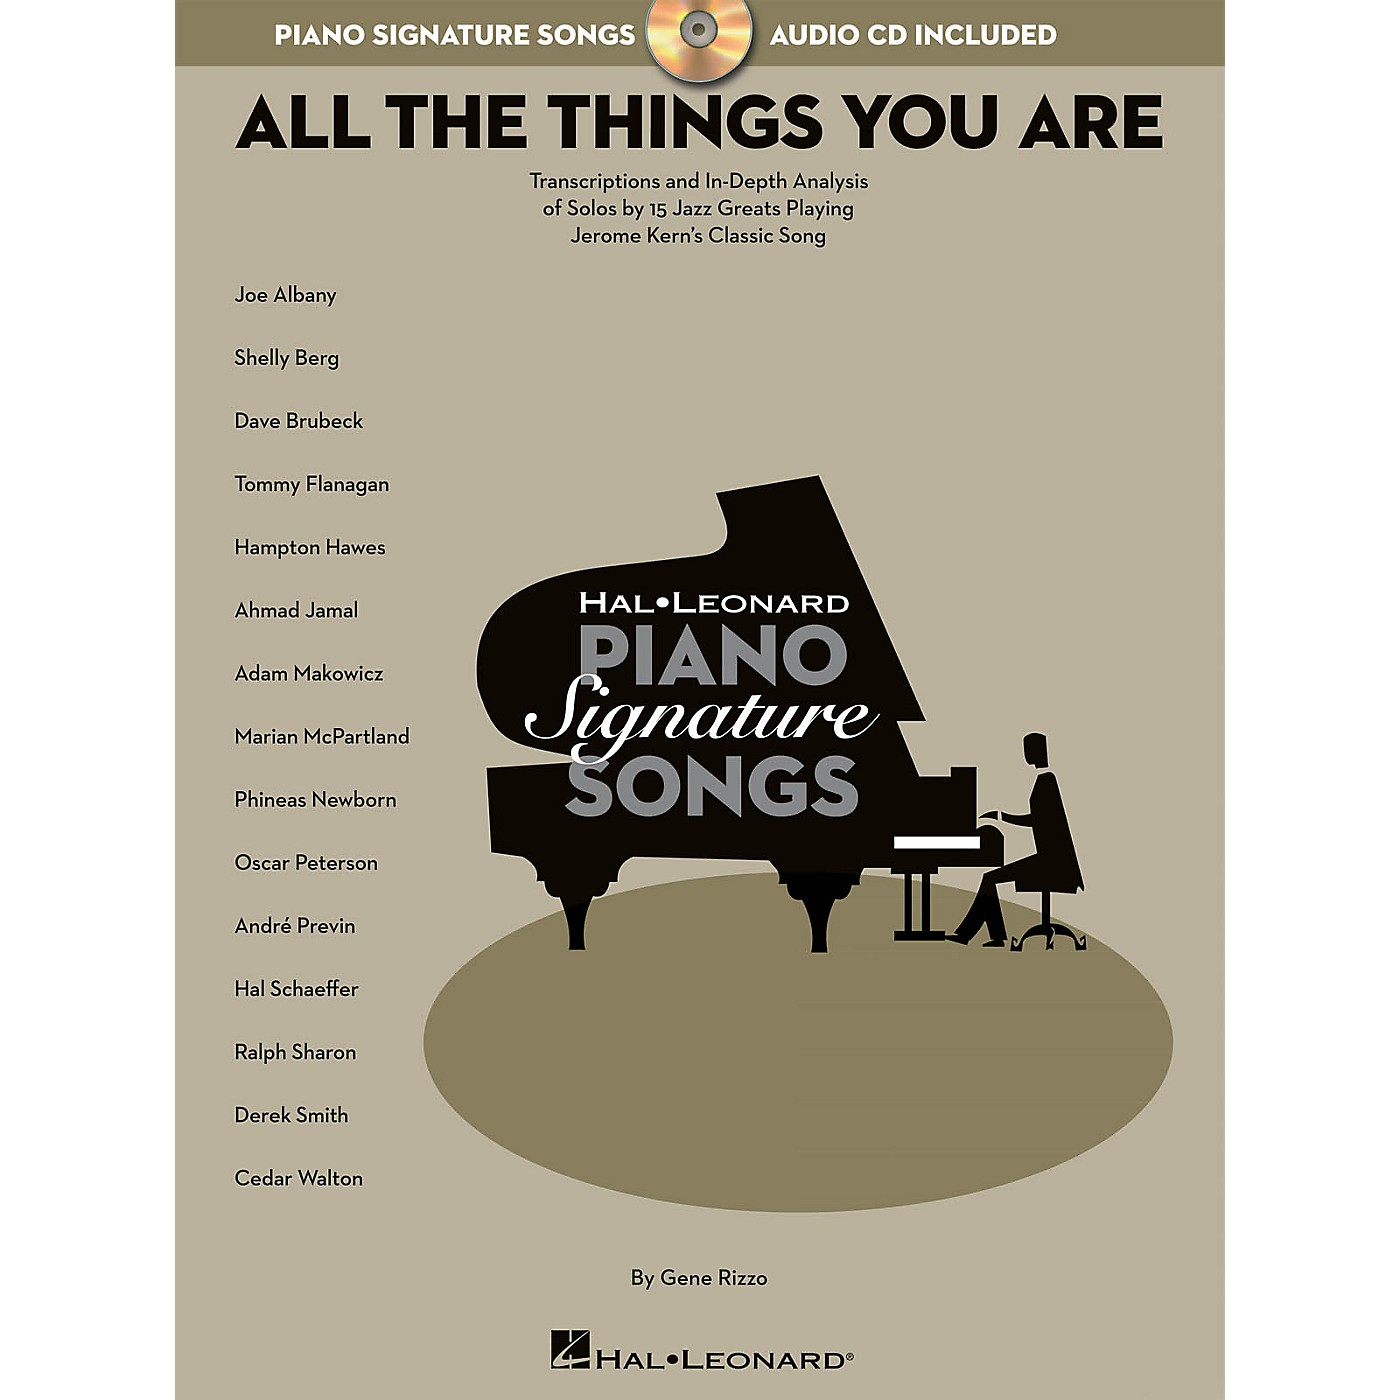 Hal Leonard All the Things You Are Signature Songs Series Softcover with CD Written by Gene Rizzo thumbnail